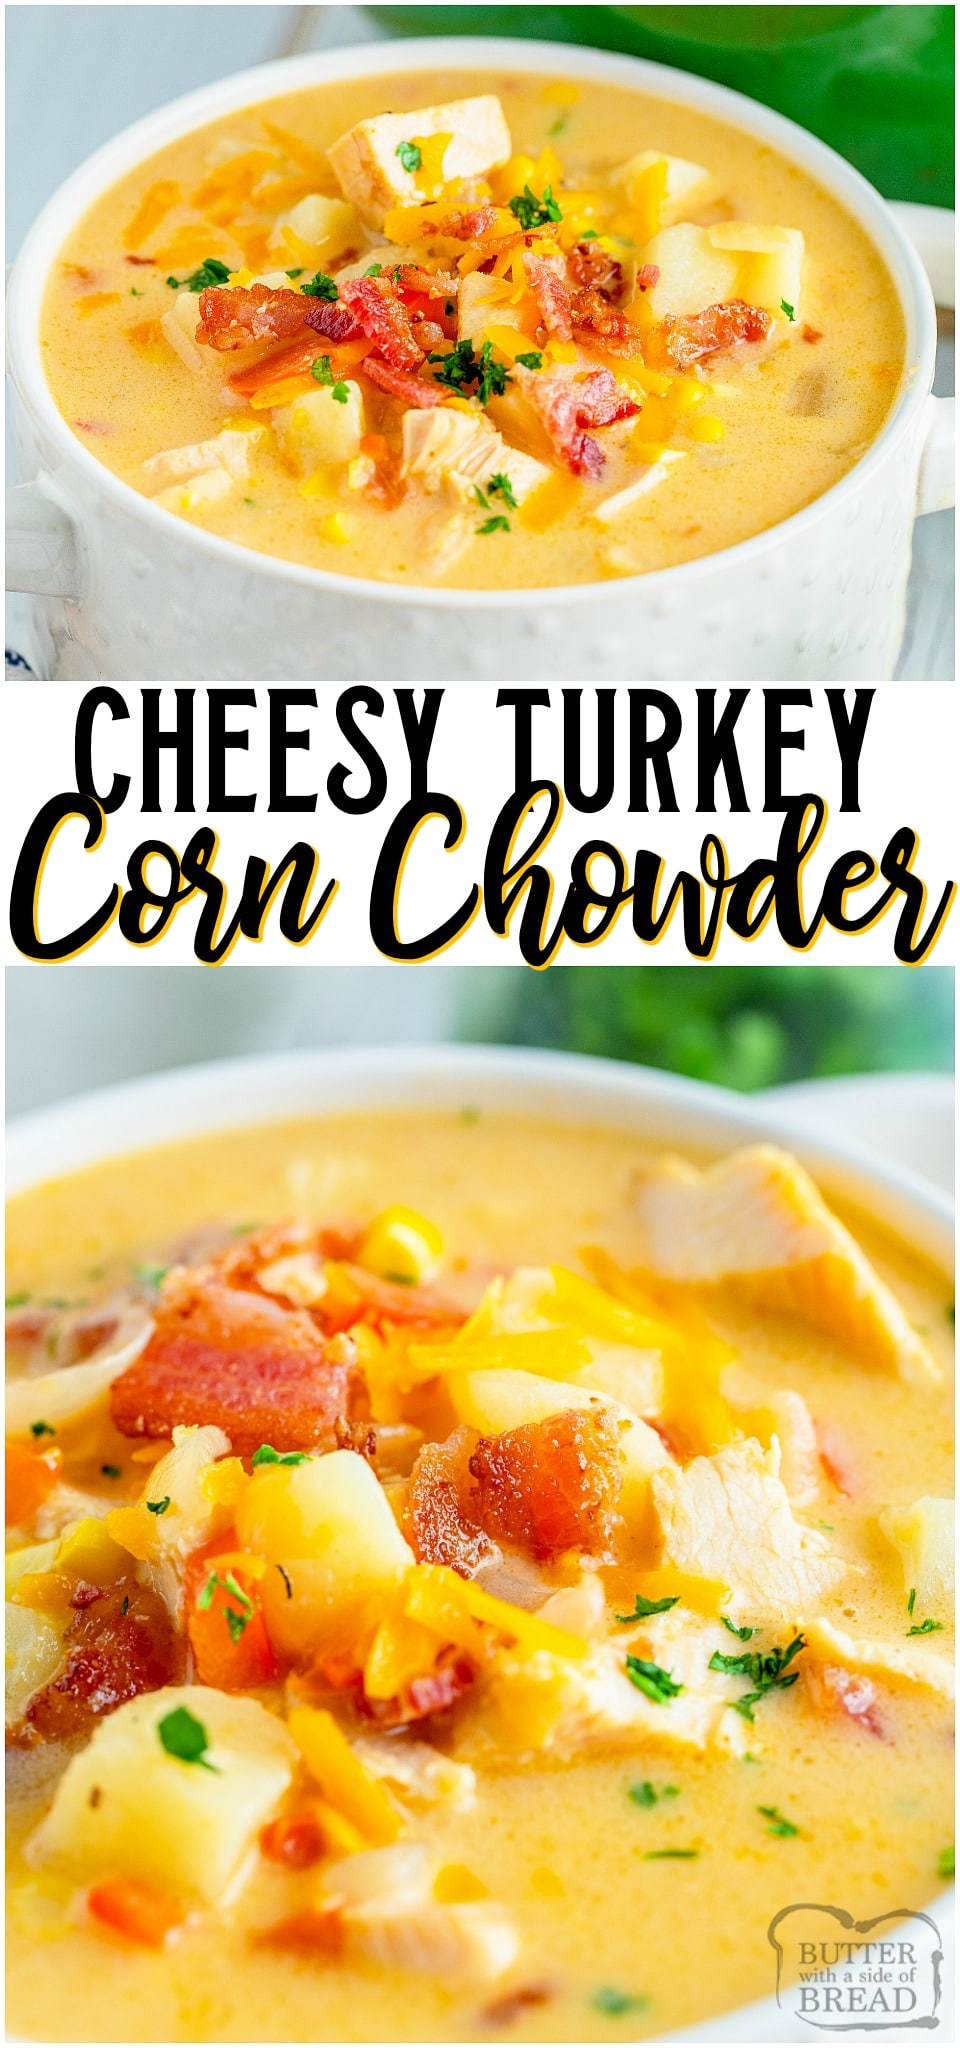 Leftover Turkey Chowder is a creamy, cheesy soup recipe made with leftover turkey, bacon, corn, and potatoes! Easy homemade corn chowder soup with bright, rich flavor for the perfect comfort food. #chowder #soup #turkey #comfortfood #easyrecipe from BUTTER WITH A SIDE OF BREAD